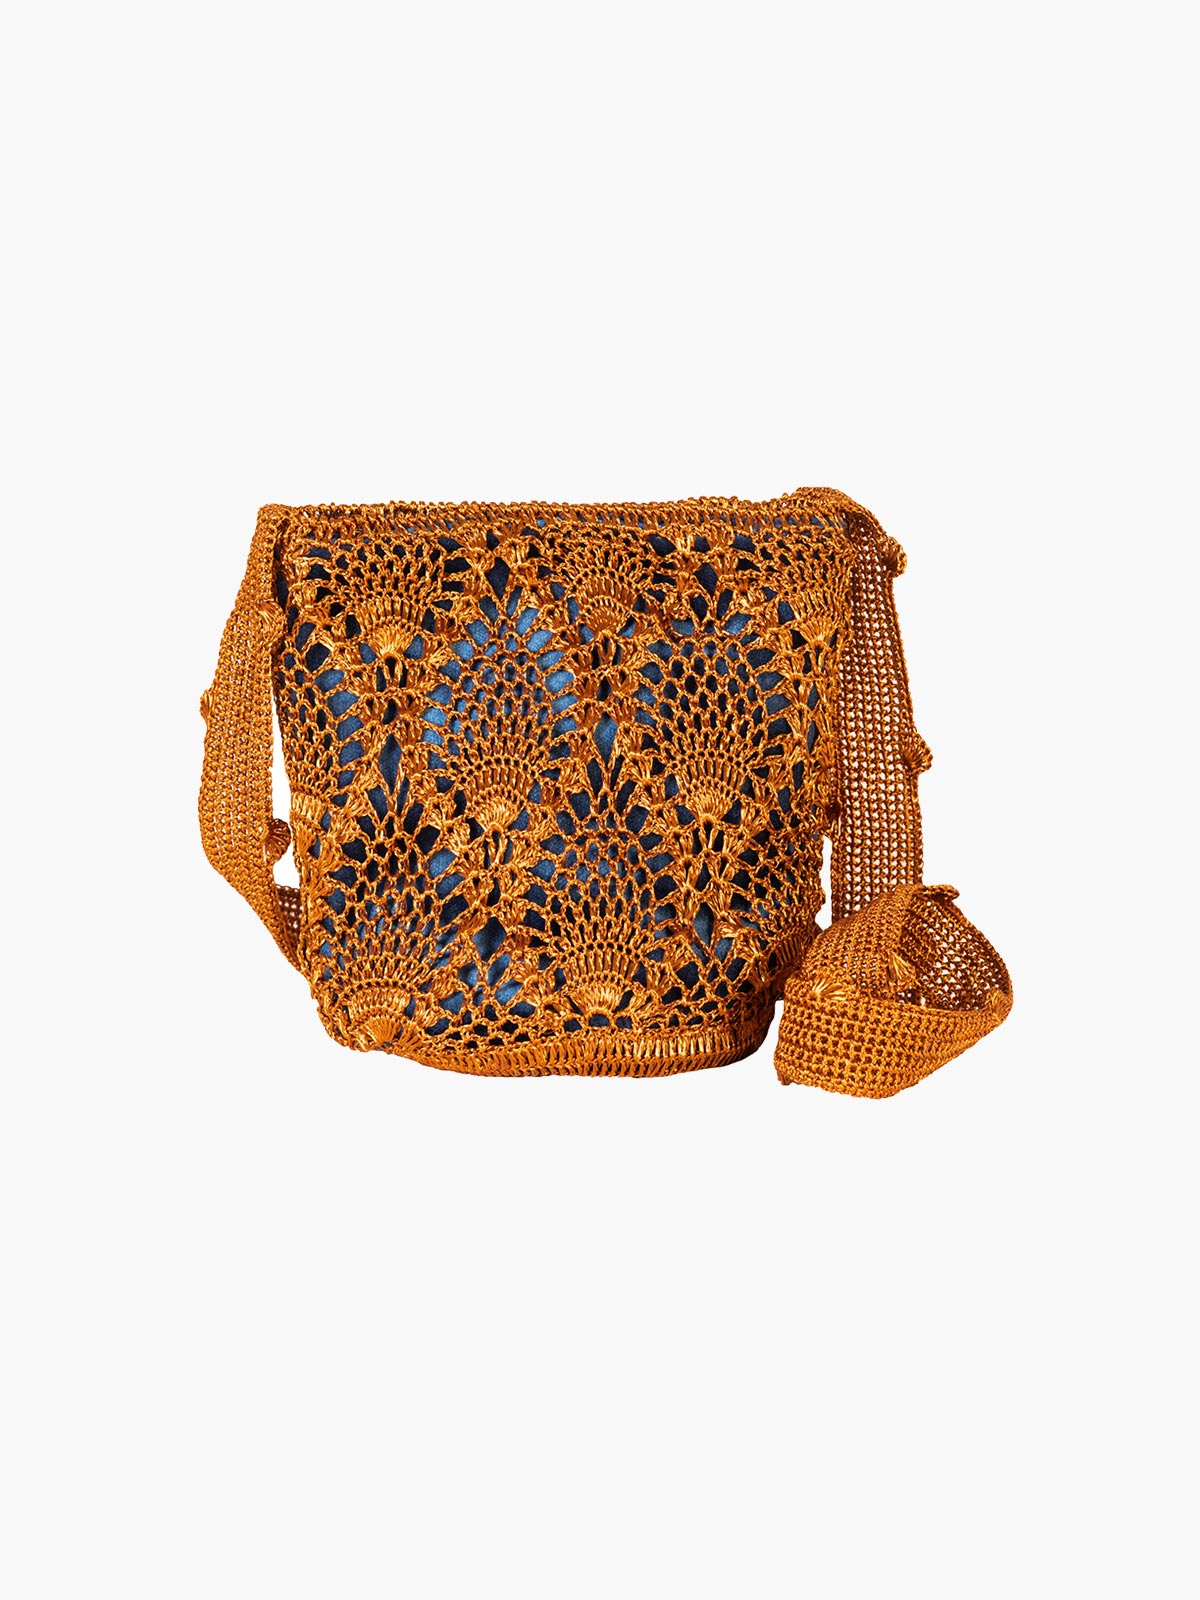 Pineapple Weave Mochila | Copper & Blue Pineapple Weave Mochila | Copper & Blue